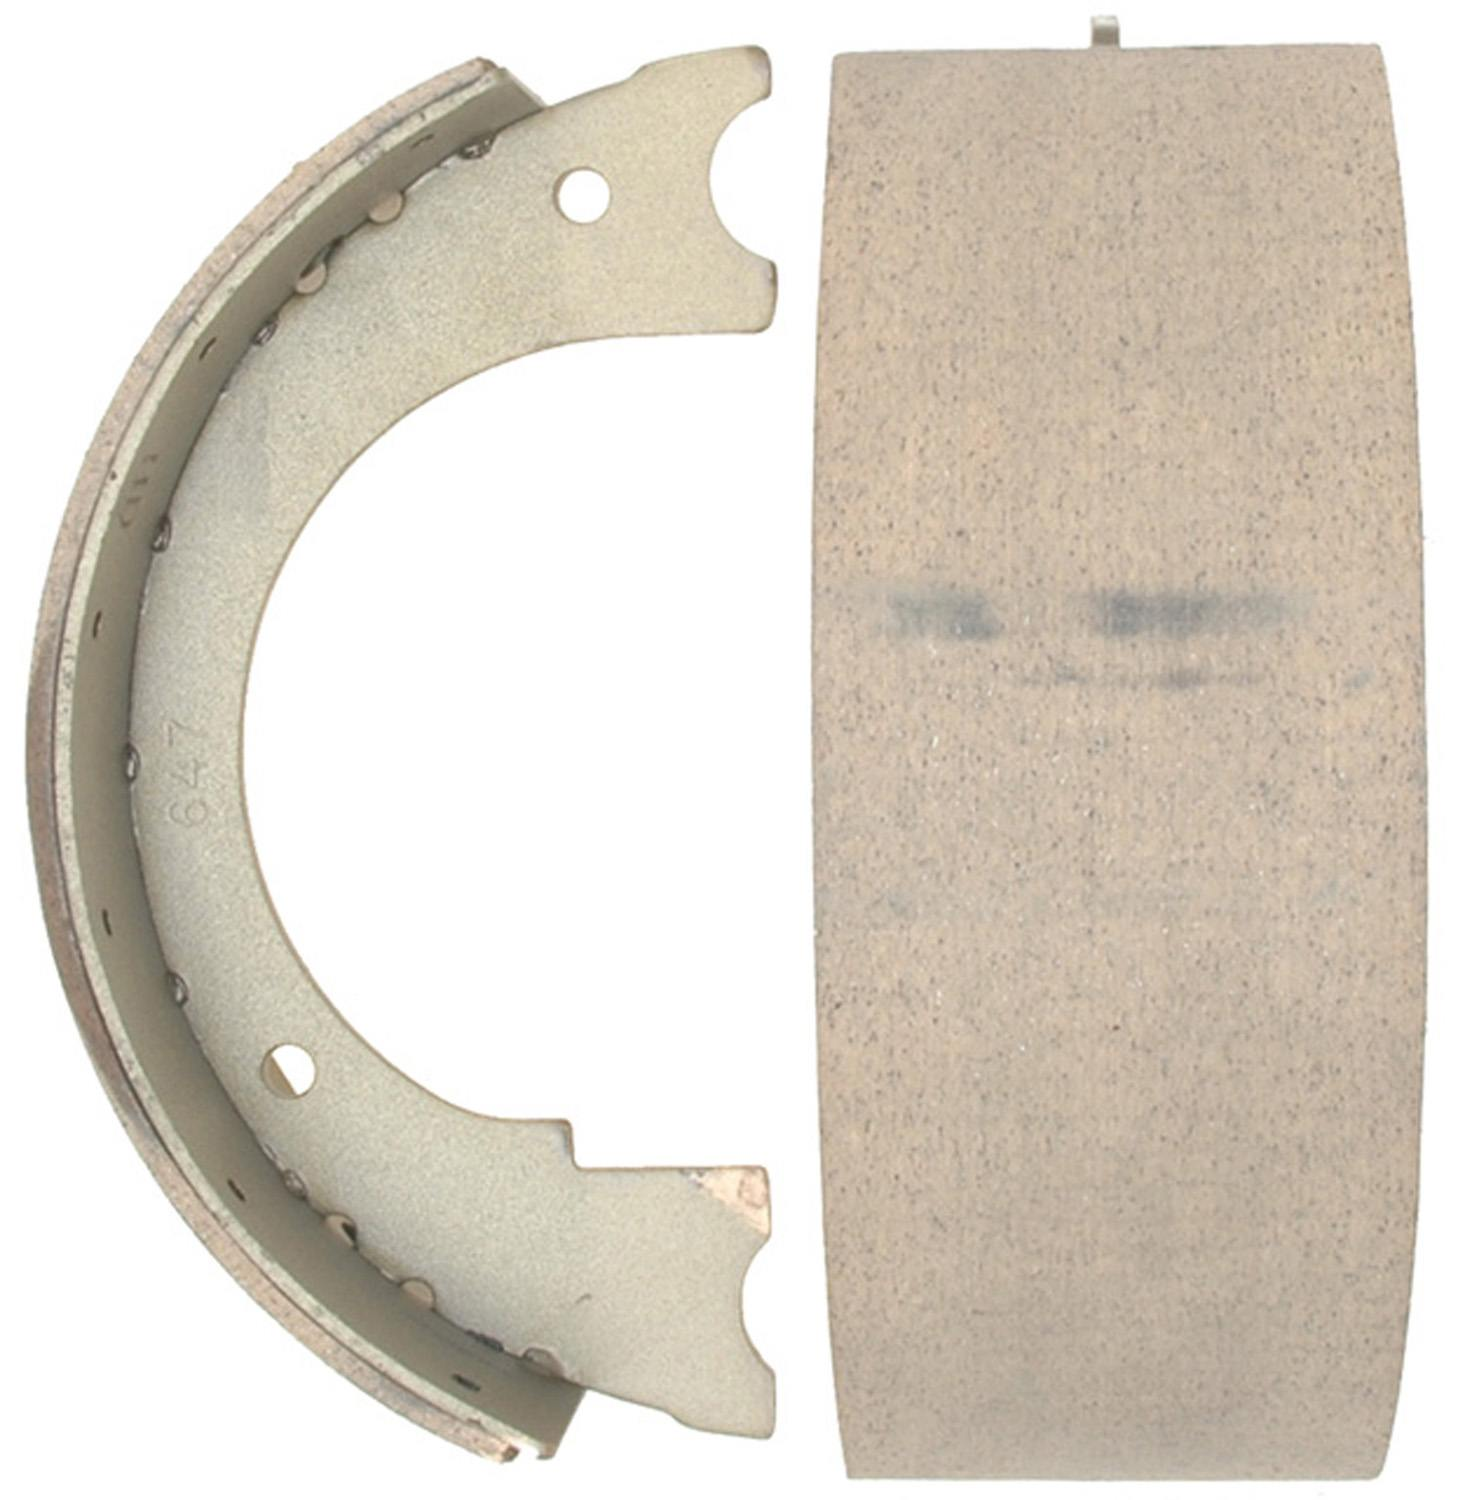 ACDELCO ADVANTAGE - Bonded Parking Brake Shoe - DCD 14647B